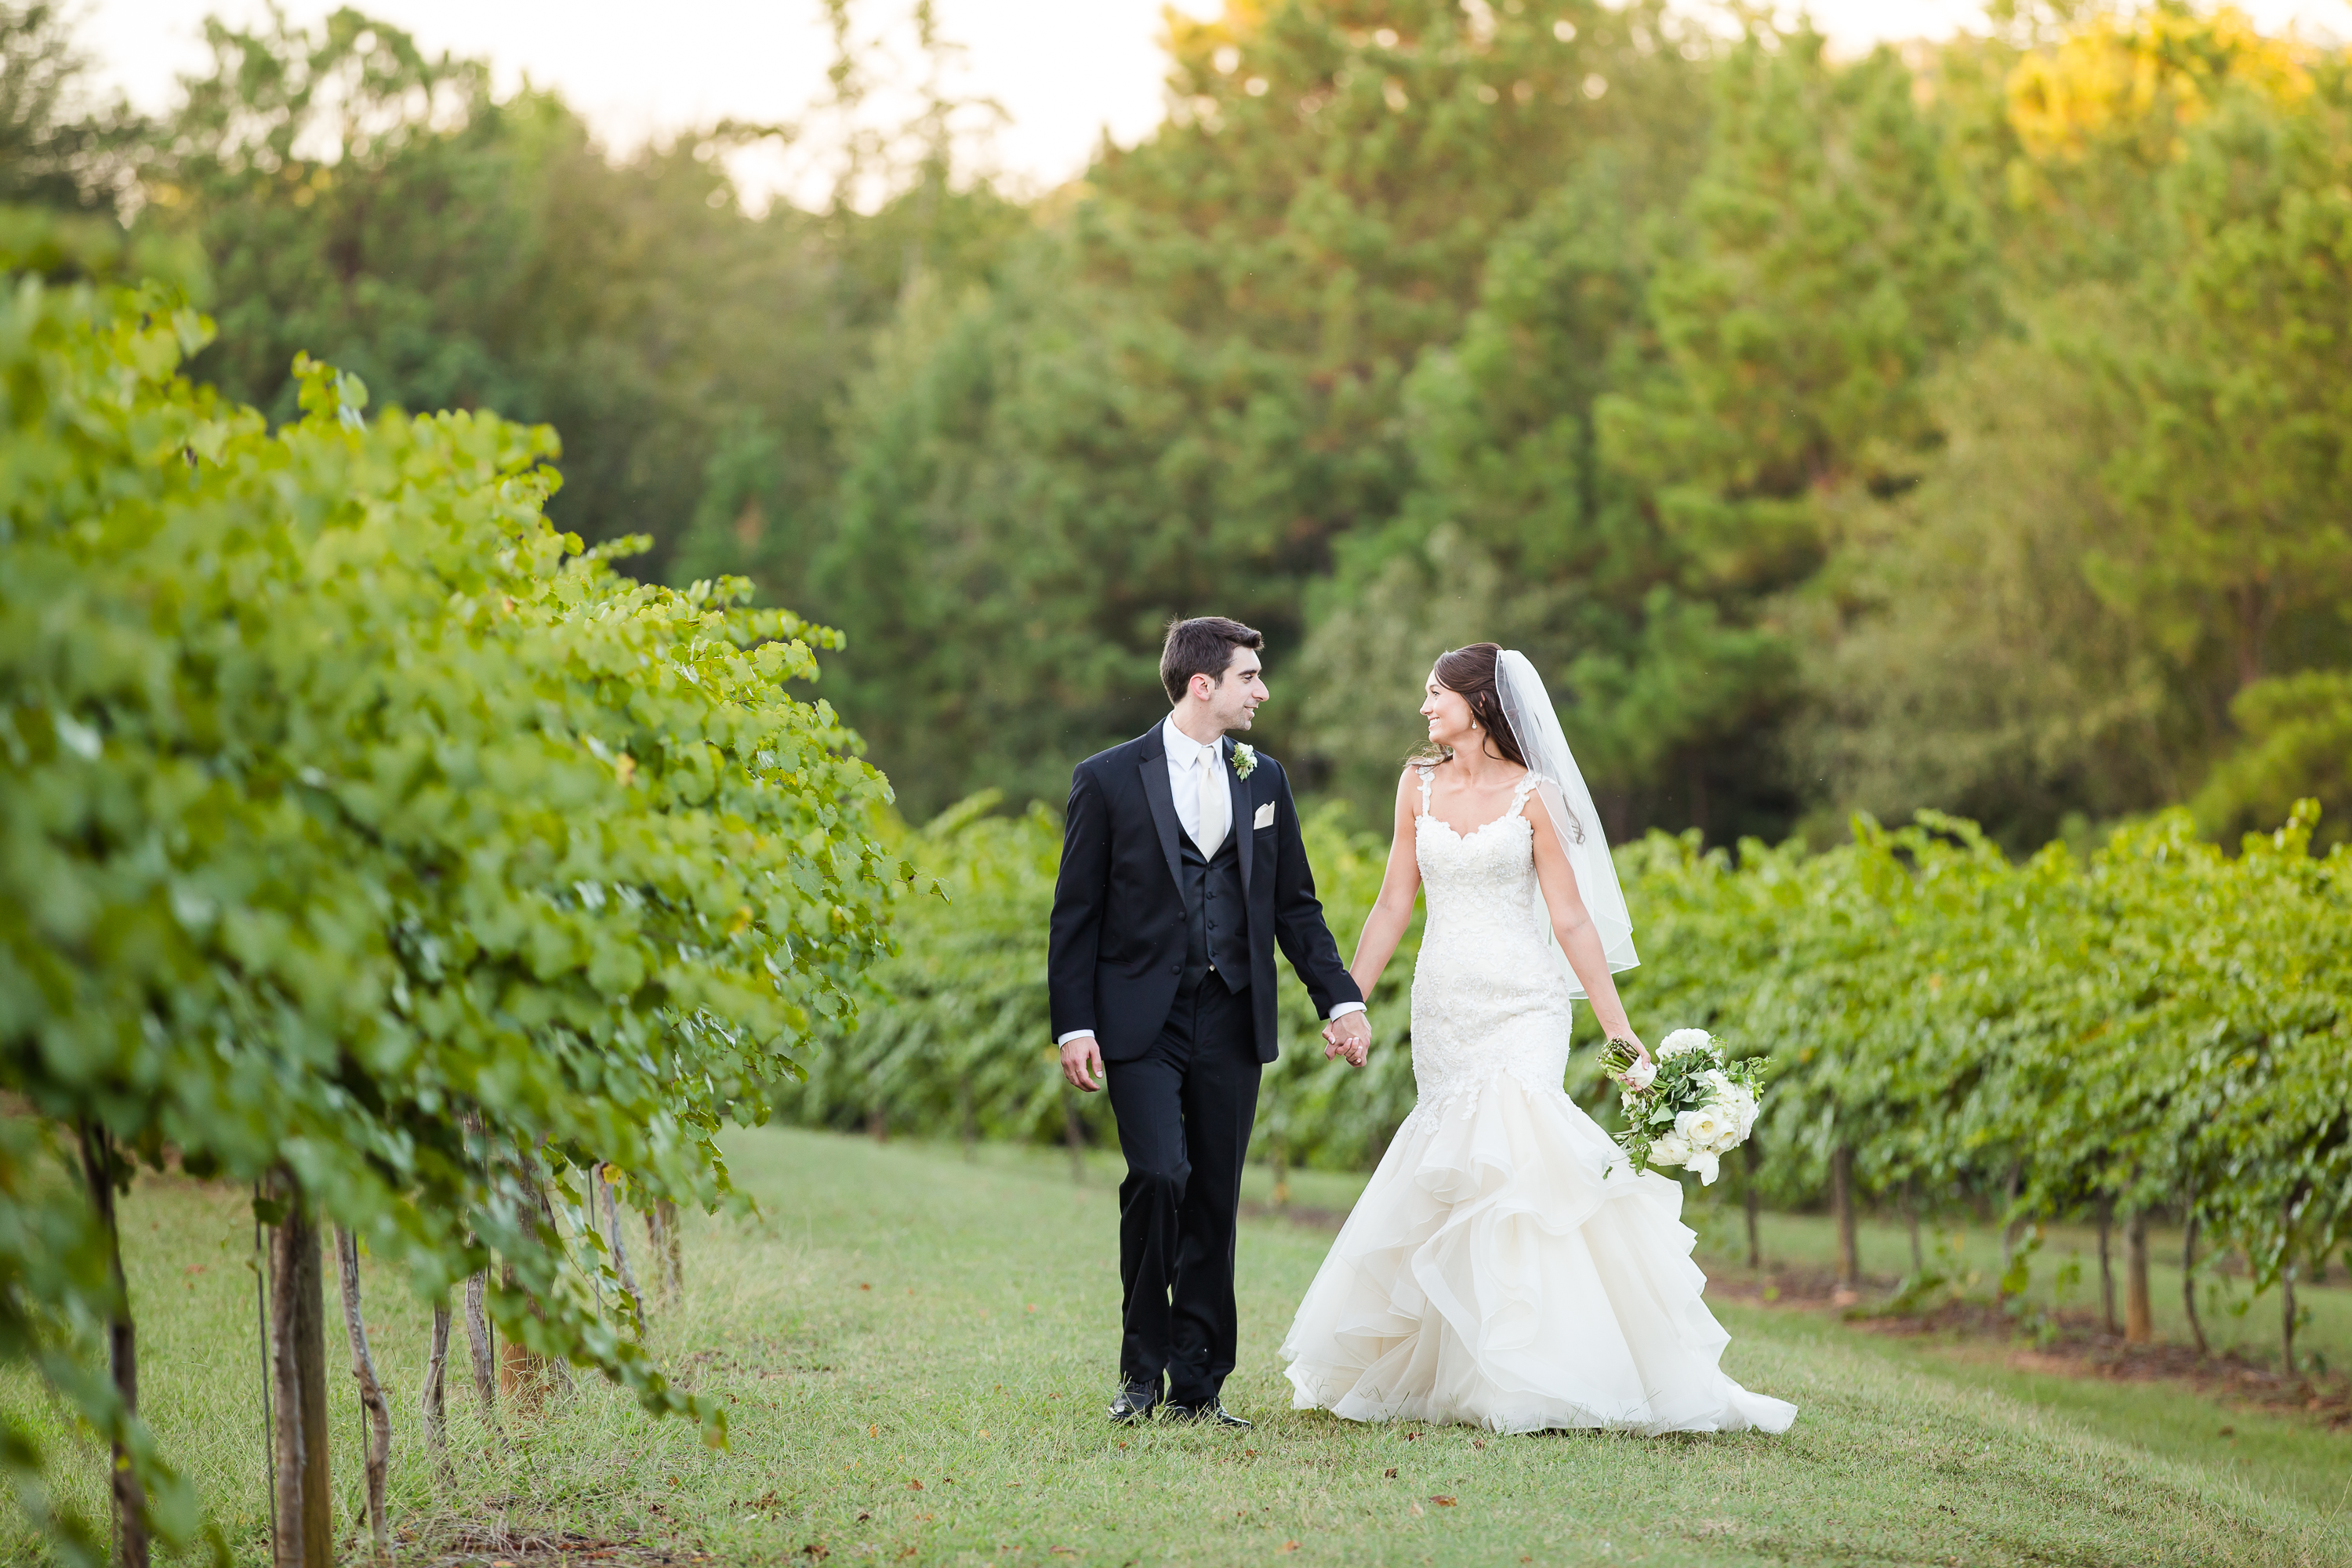 claire-diana-photography-farm-high-shoals-wedding-161